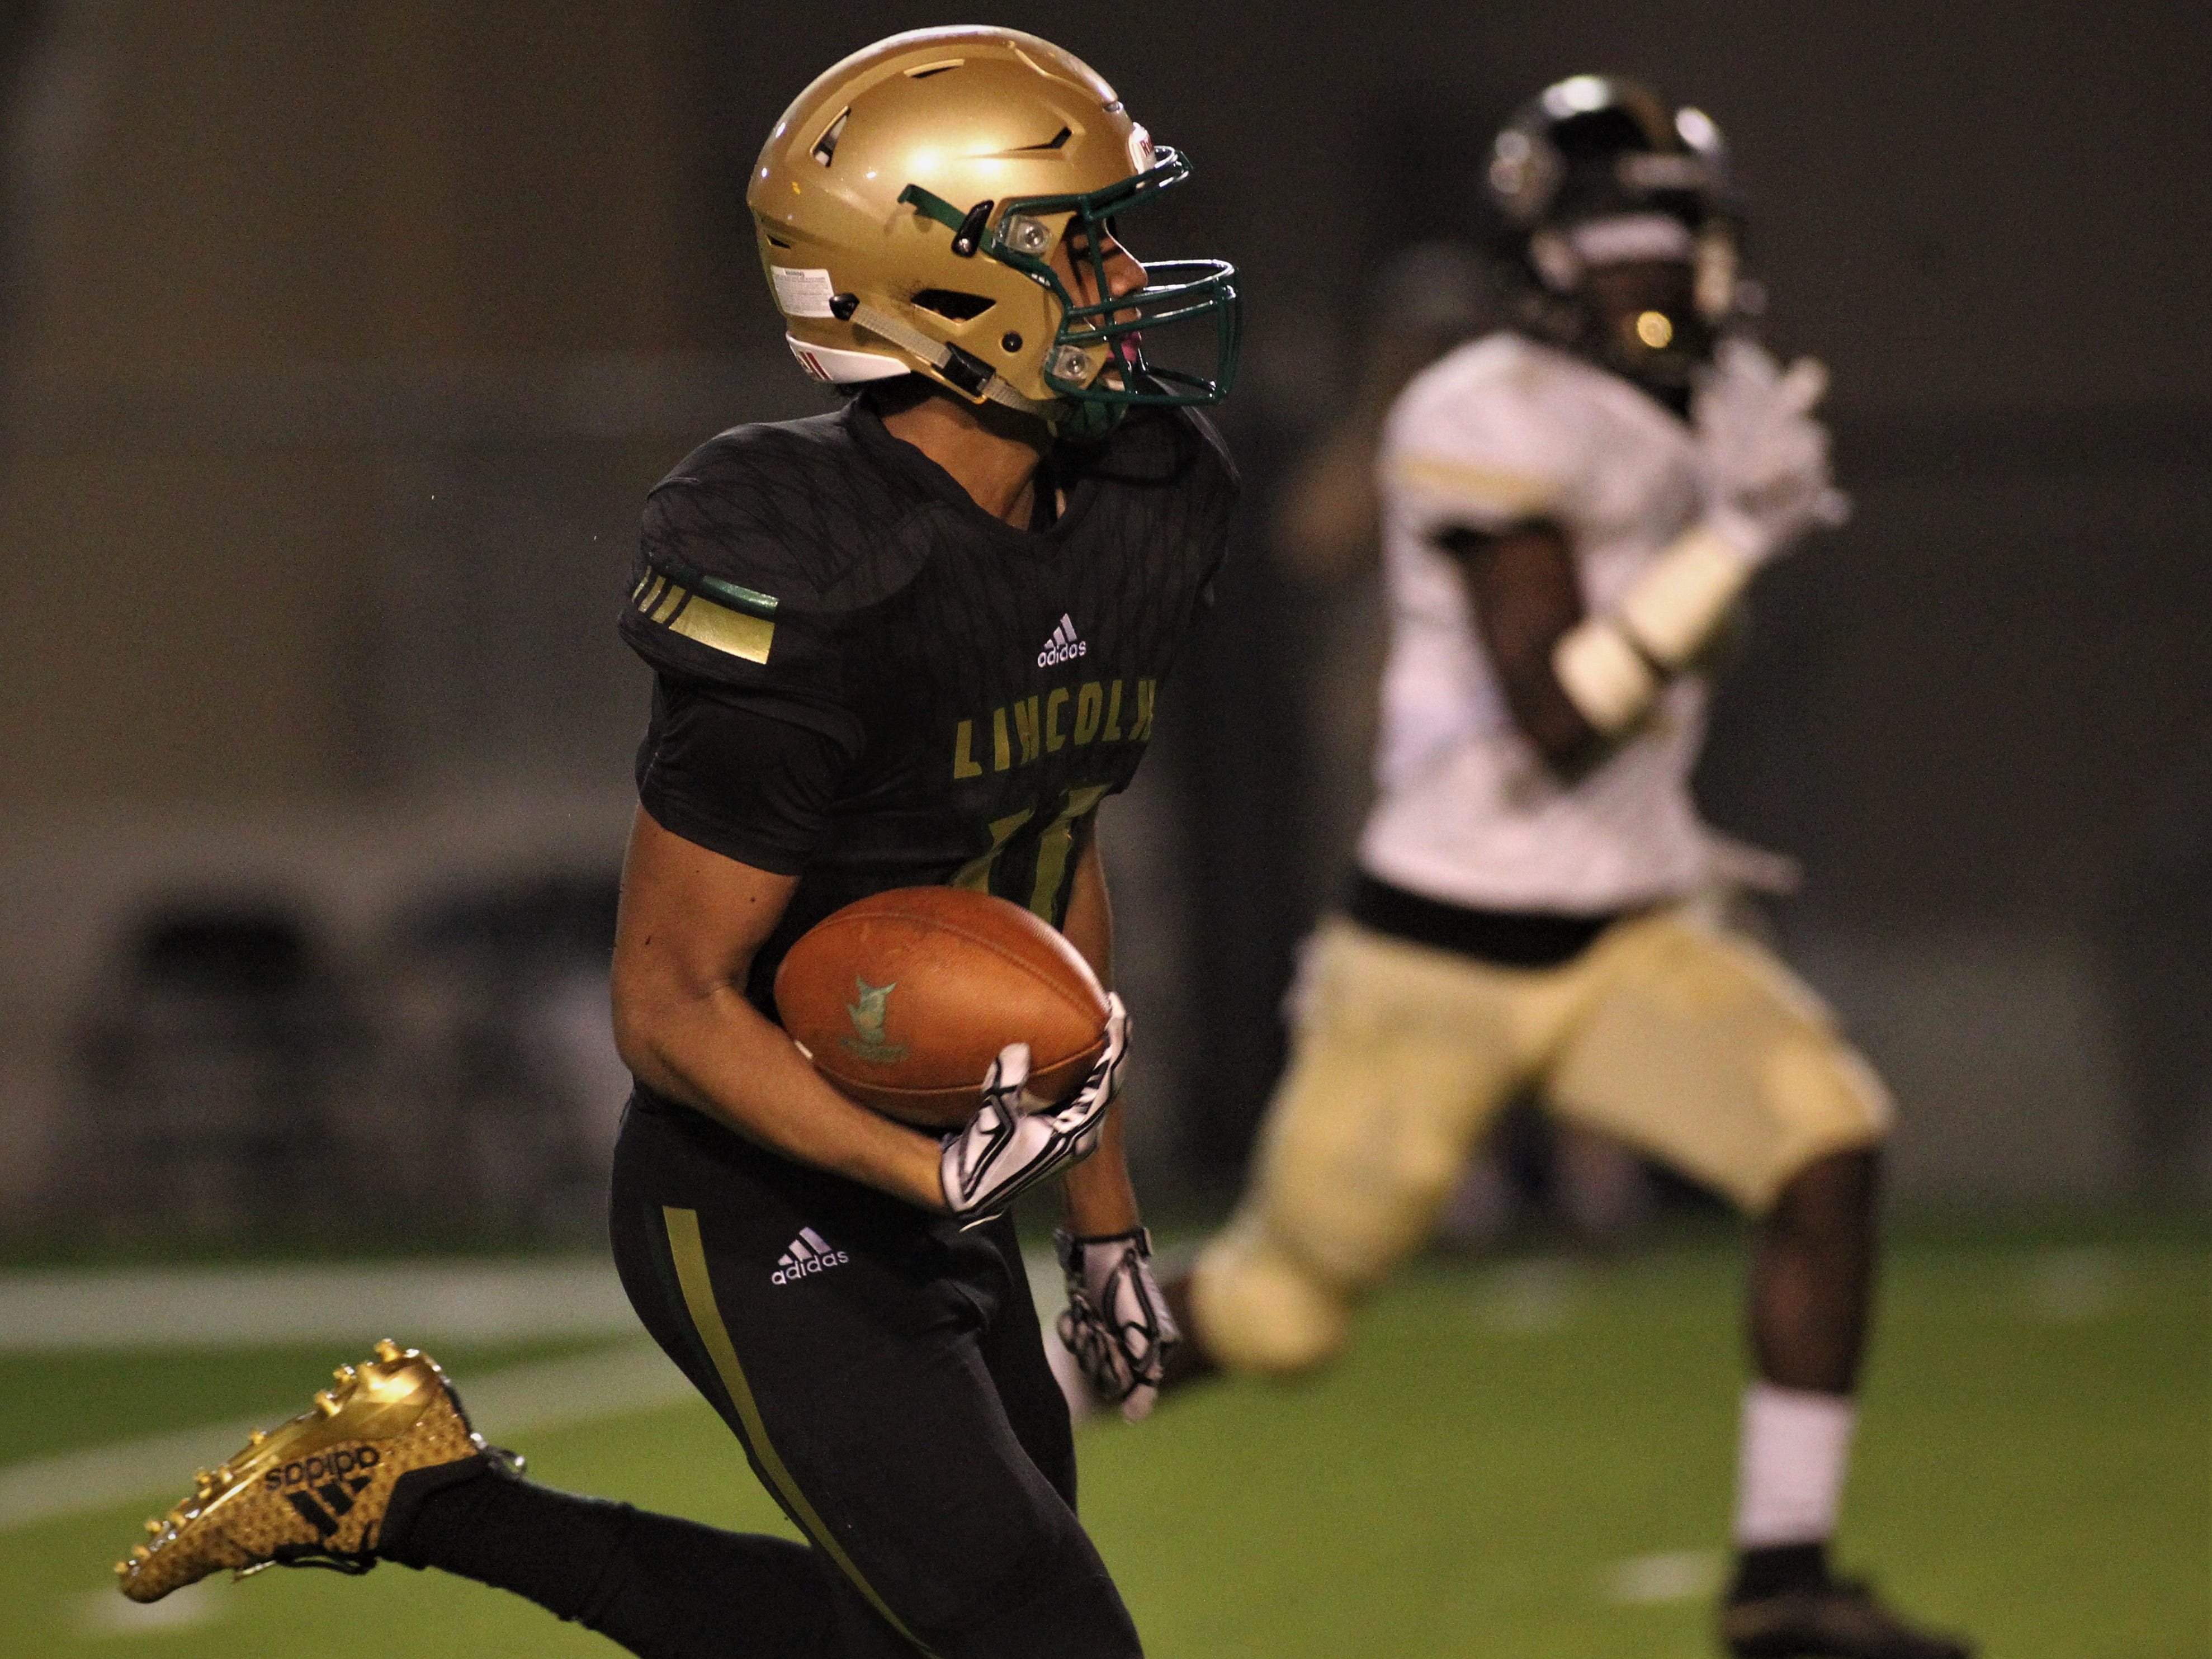 Lincoln receiver Marko Skarica takes off on a long touchdown reception as Lincoln beat Oakleaf 38-31 in three overtime periods during a Region 1-7A quarterfinal Thursday night at Gene Cox Stadium.